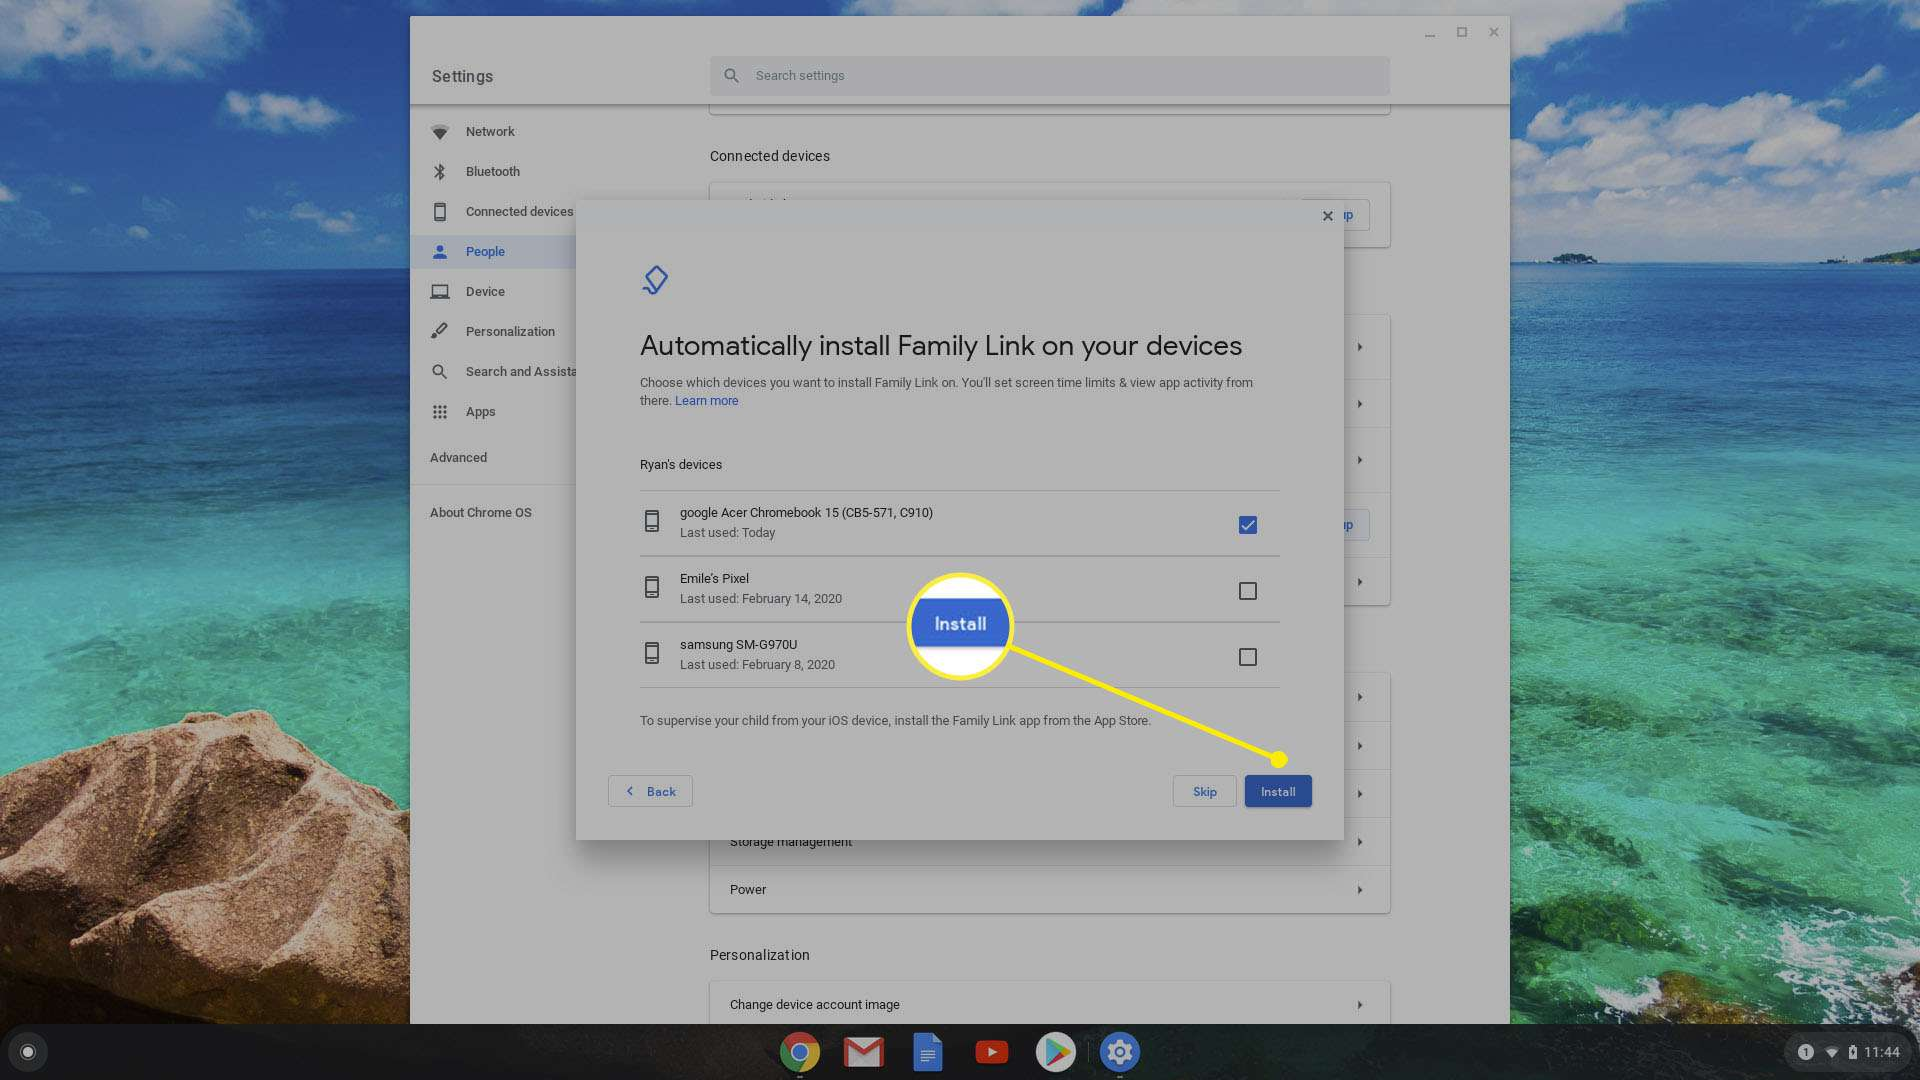 install family link on devices using Chromebook